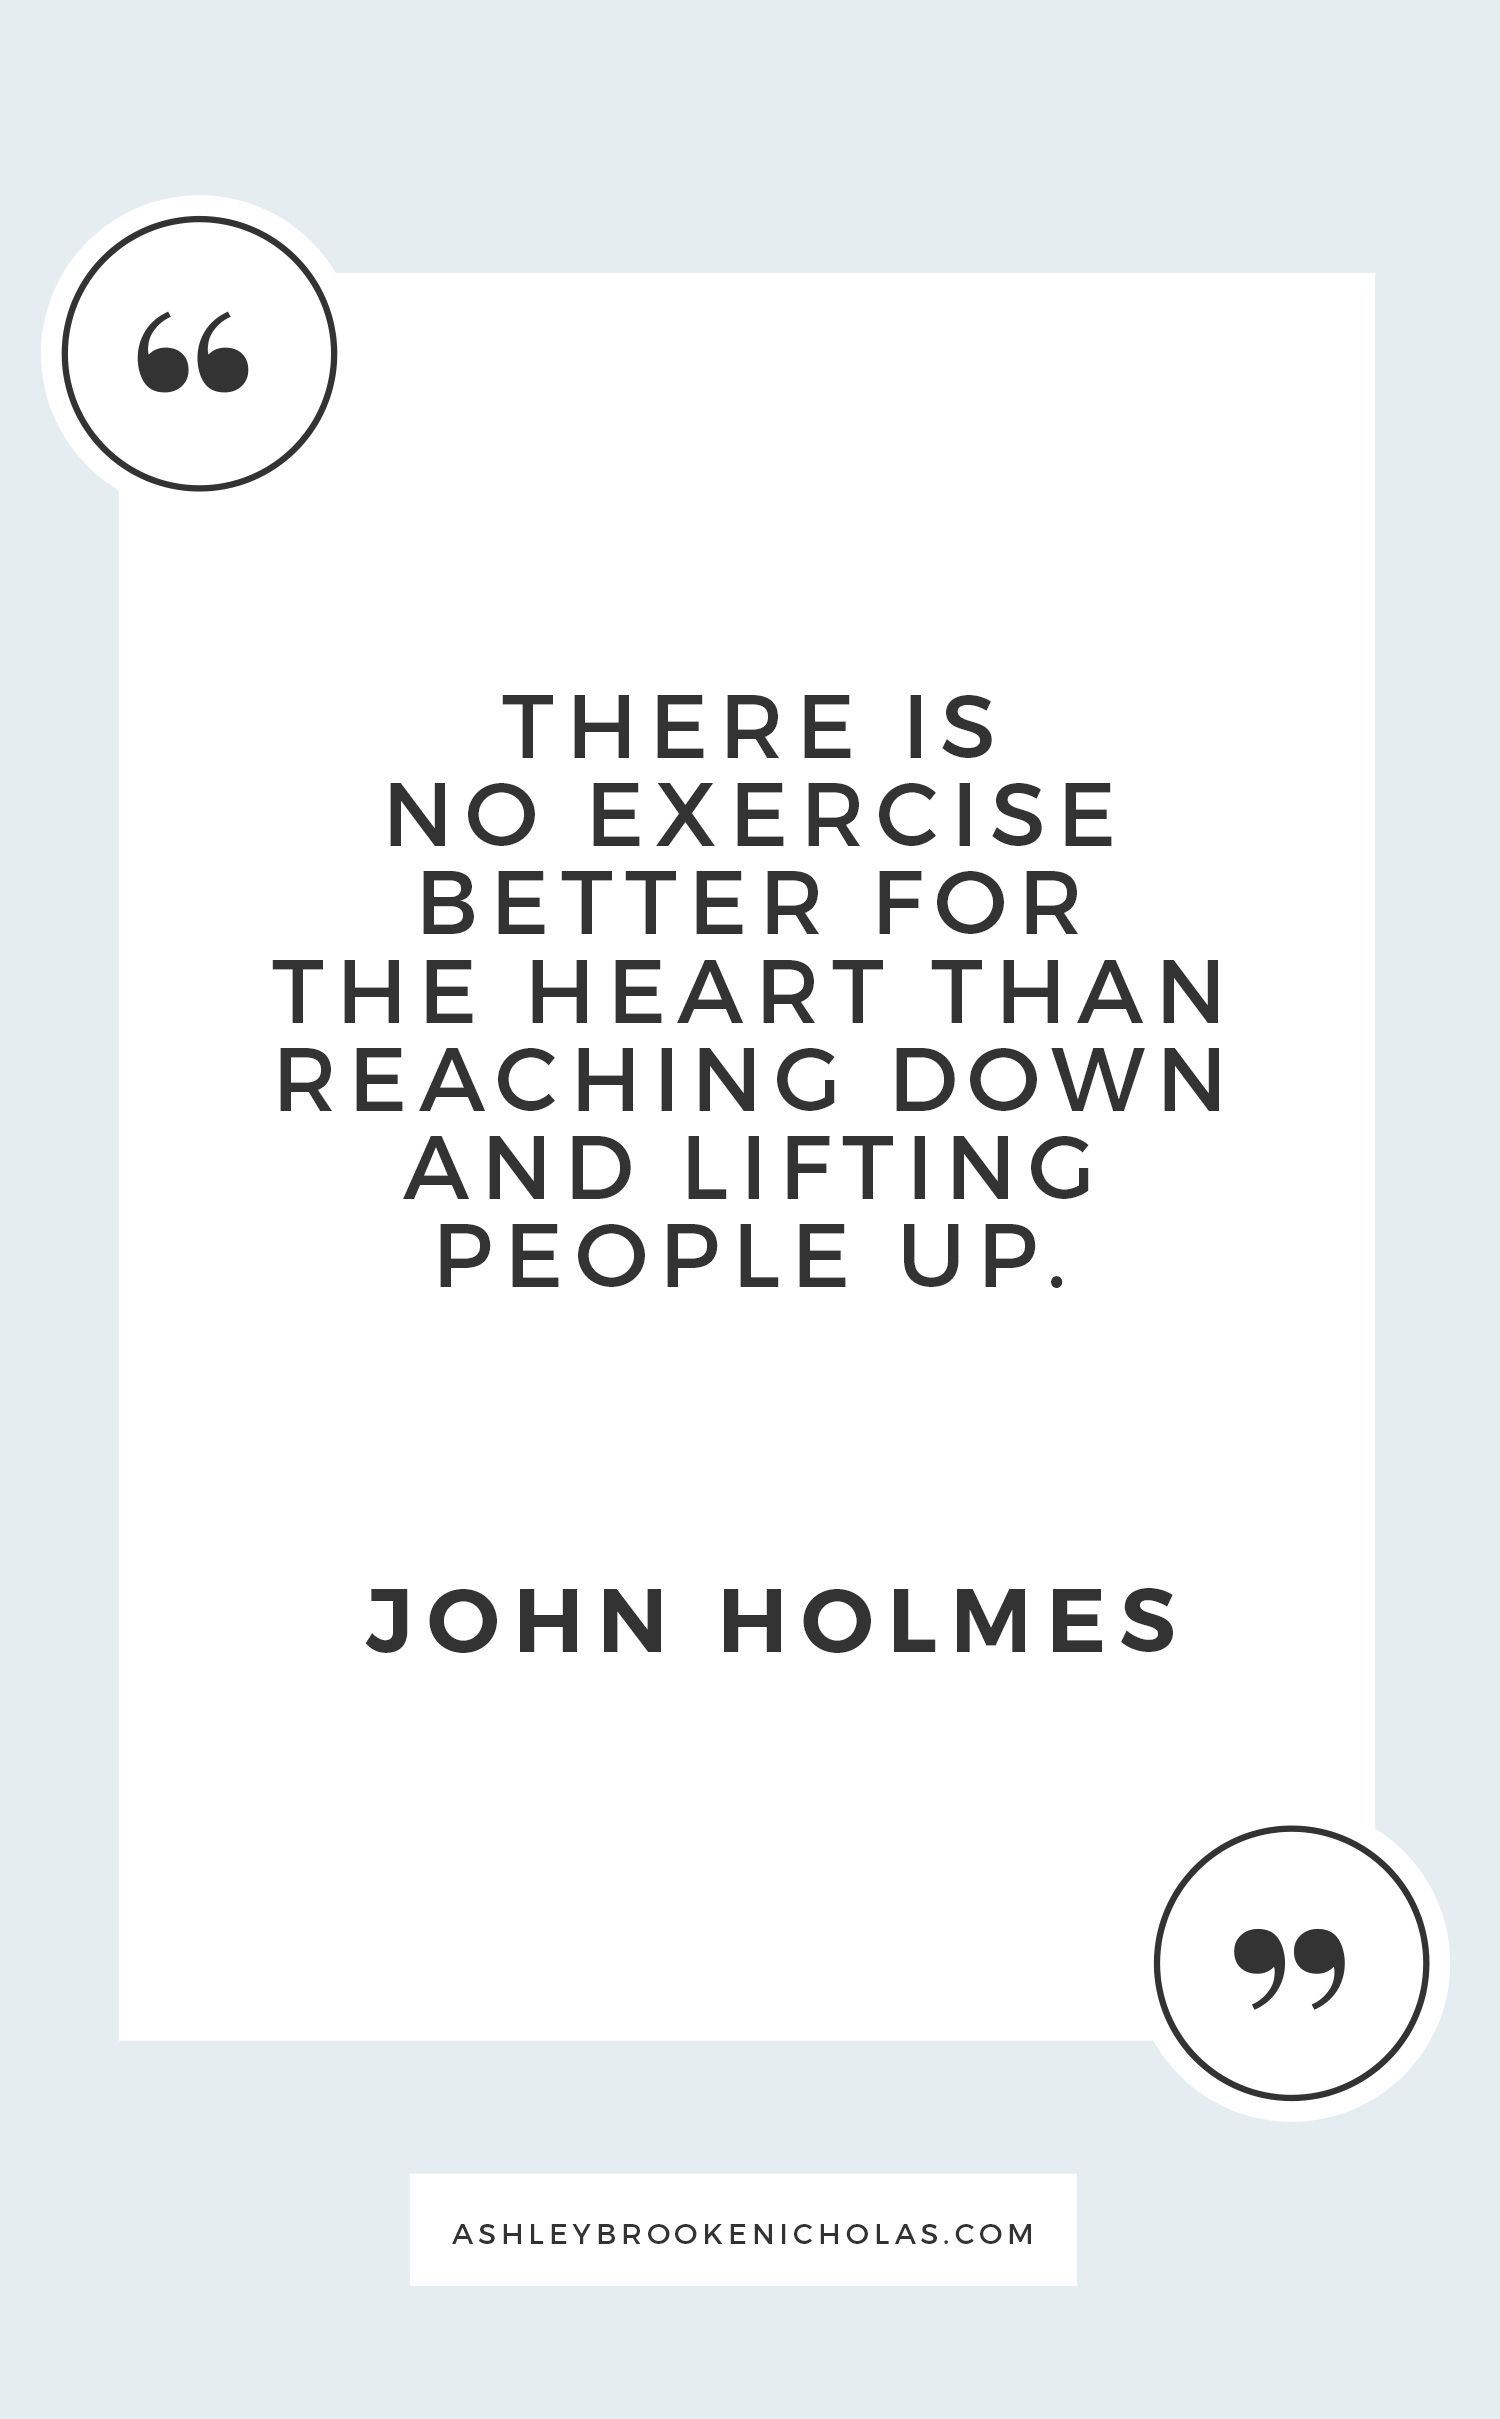 Quotes About Giving Back 4 Easy Ways To Give Back  Quotes About Giving Back John Holmes